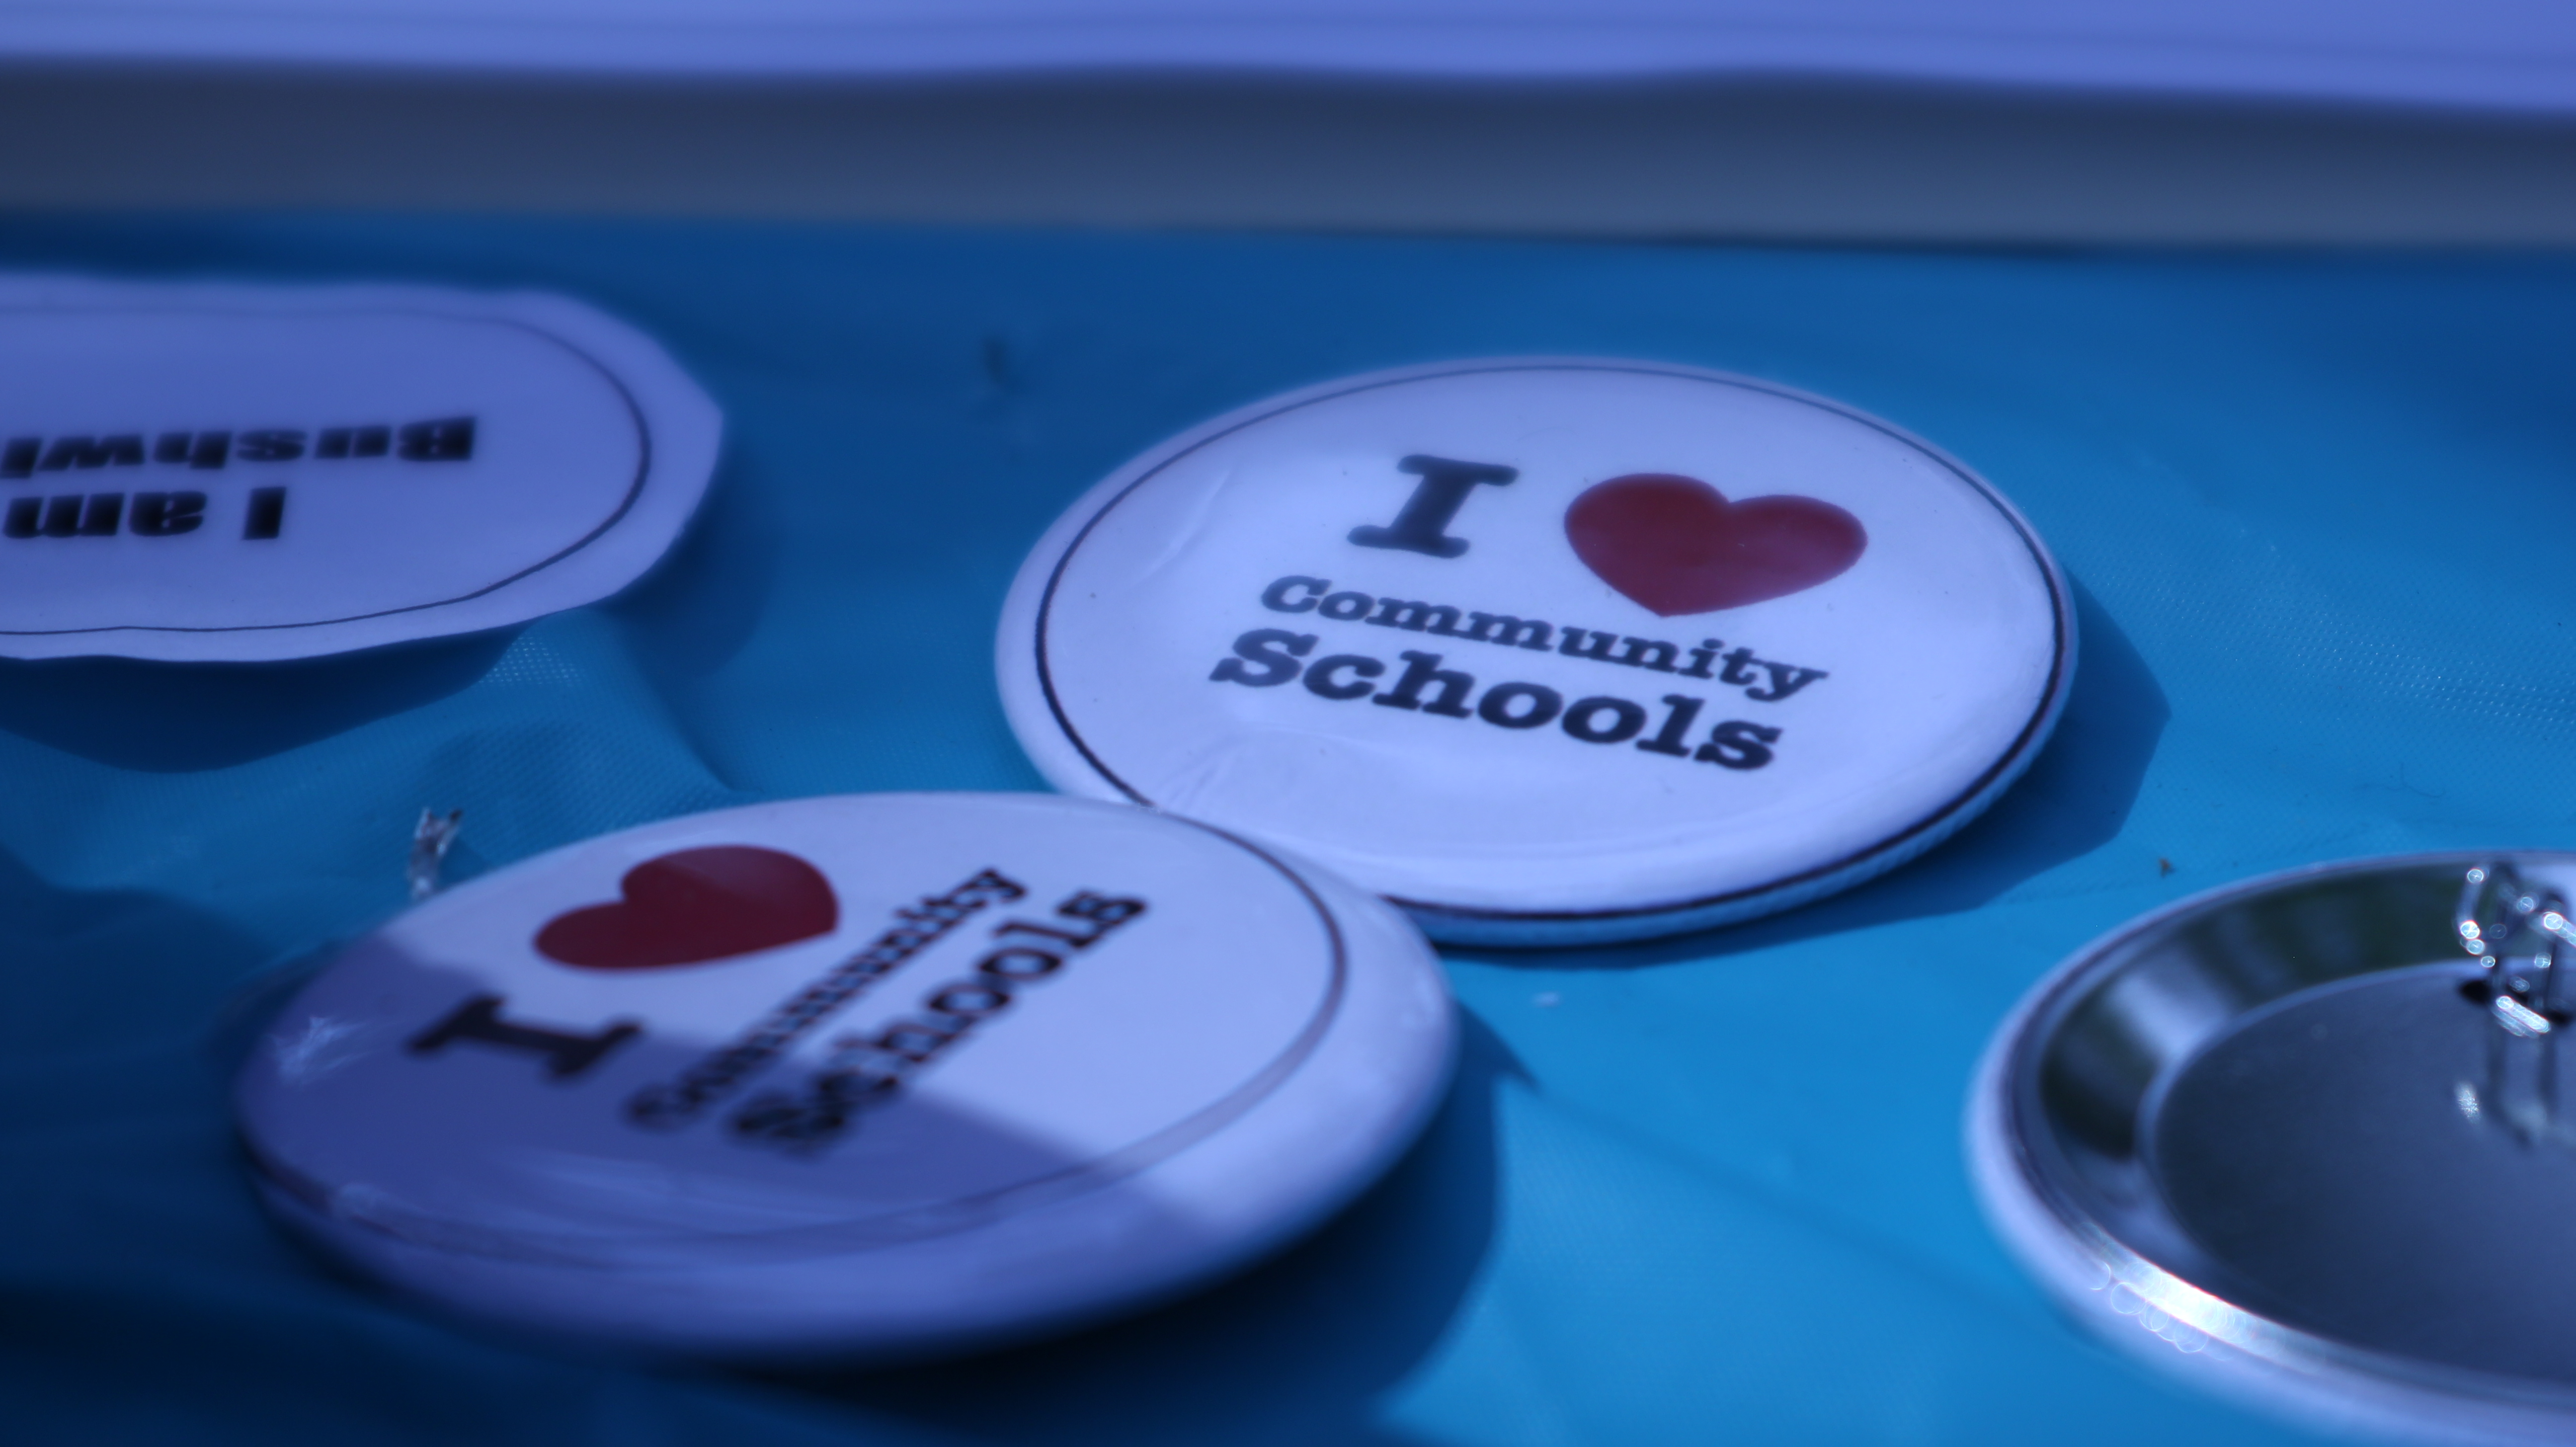 Community School Buttons (Se Hace Camino NY)